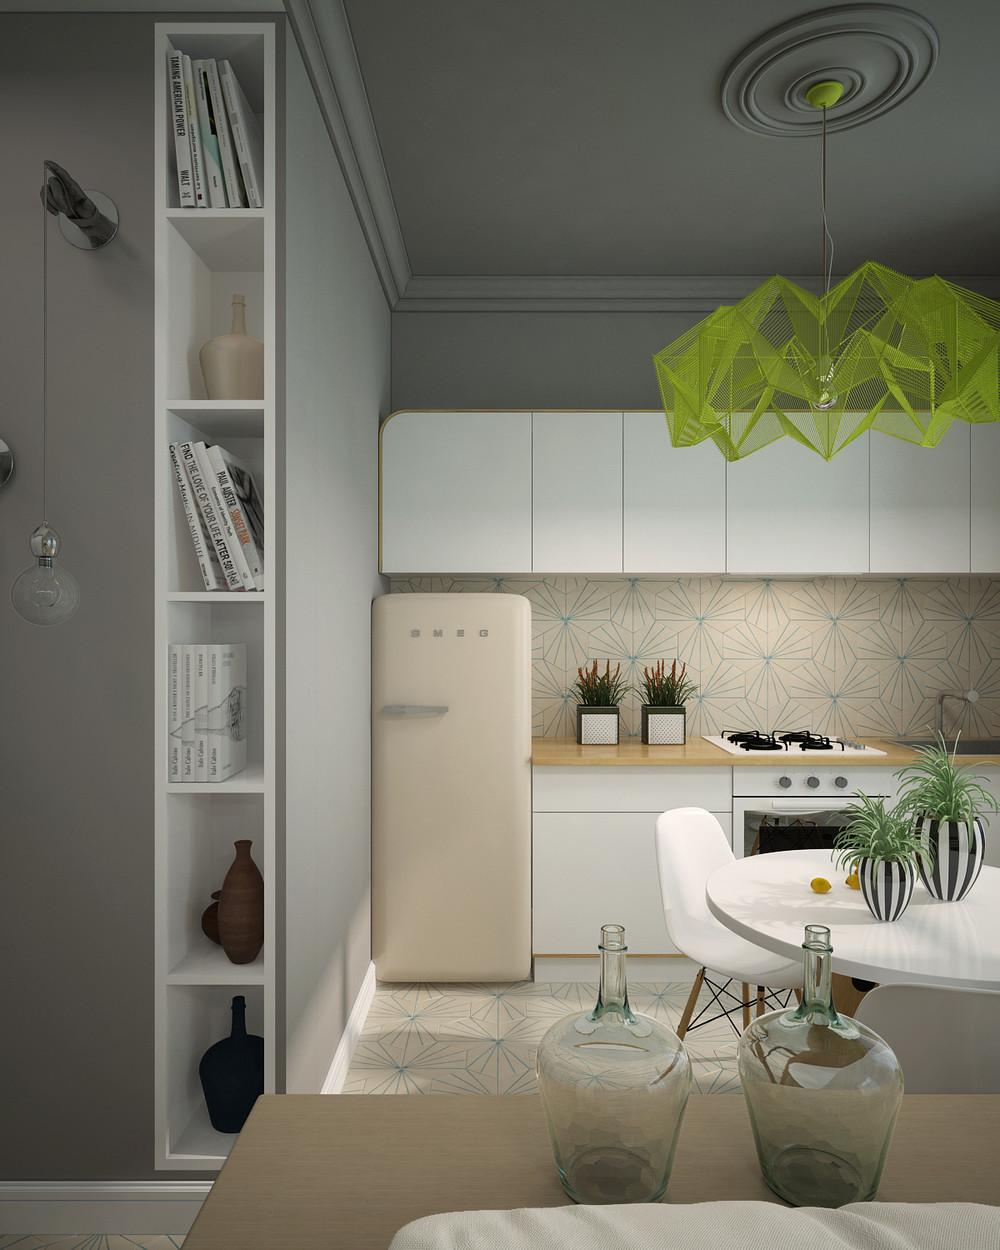 Dazzling Neon Accents Can Beautify Your Minimalist